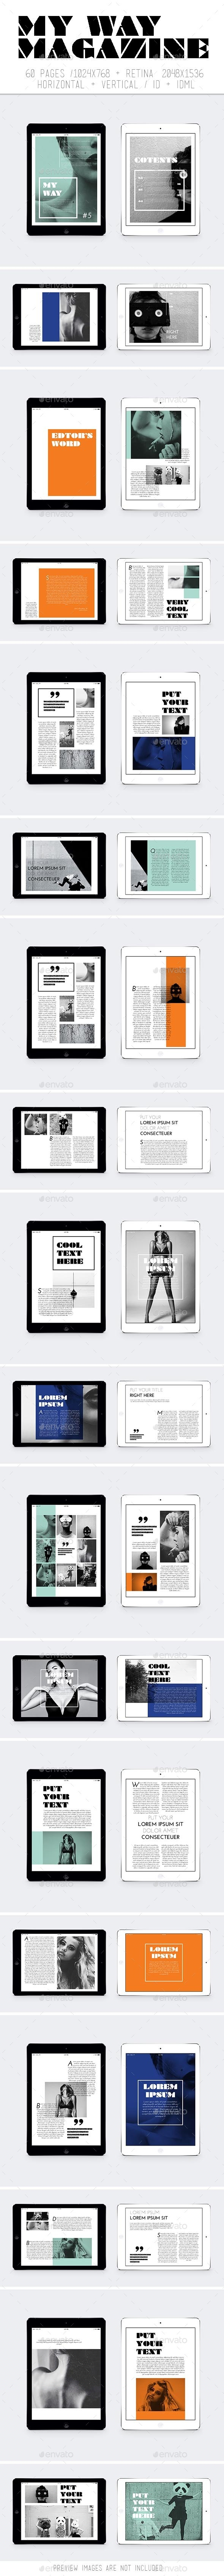 GraphicRiver Ipad&Tablet My Way Magazine 11198101